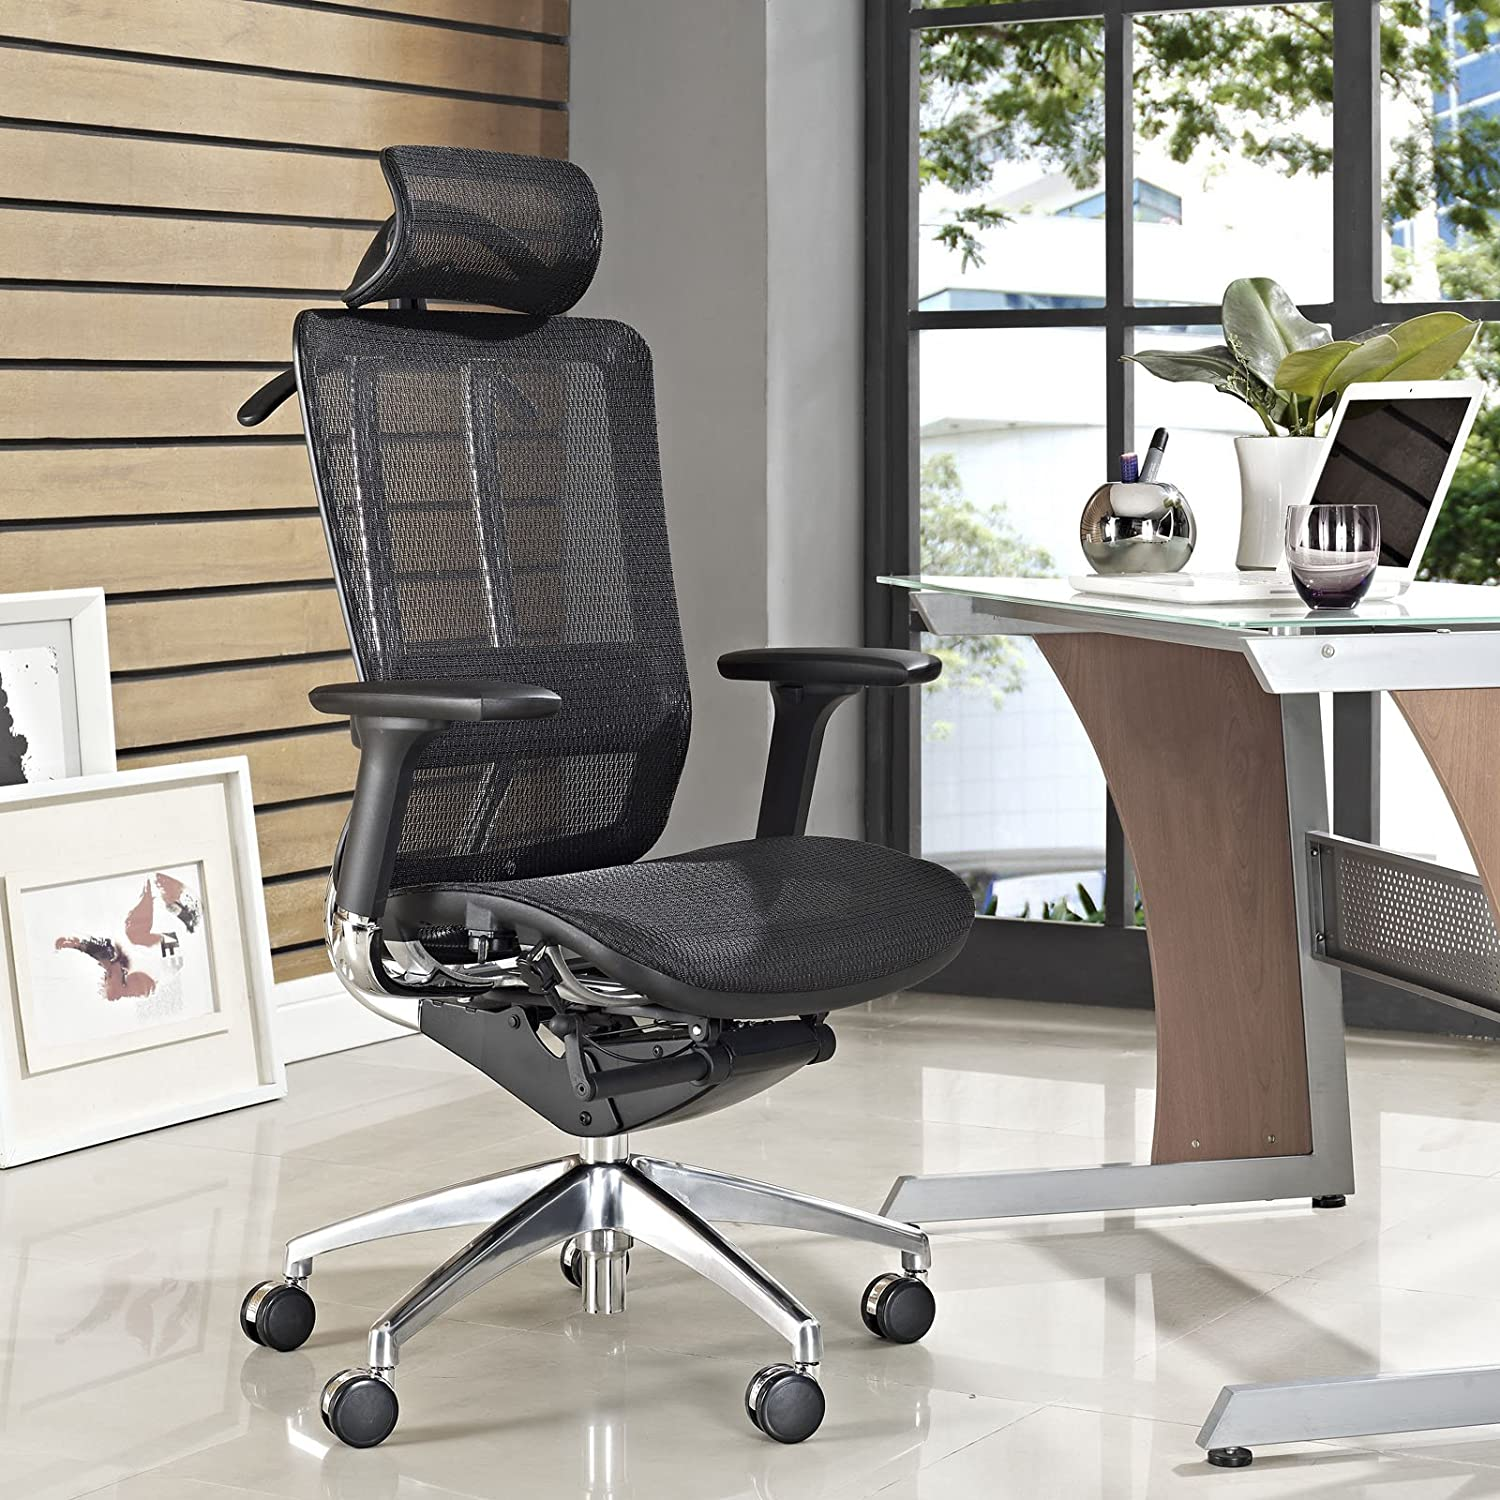 Amazon Modway Future fice Chair with Headrest with Black